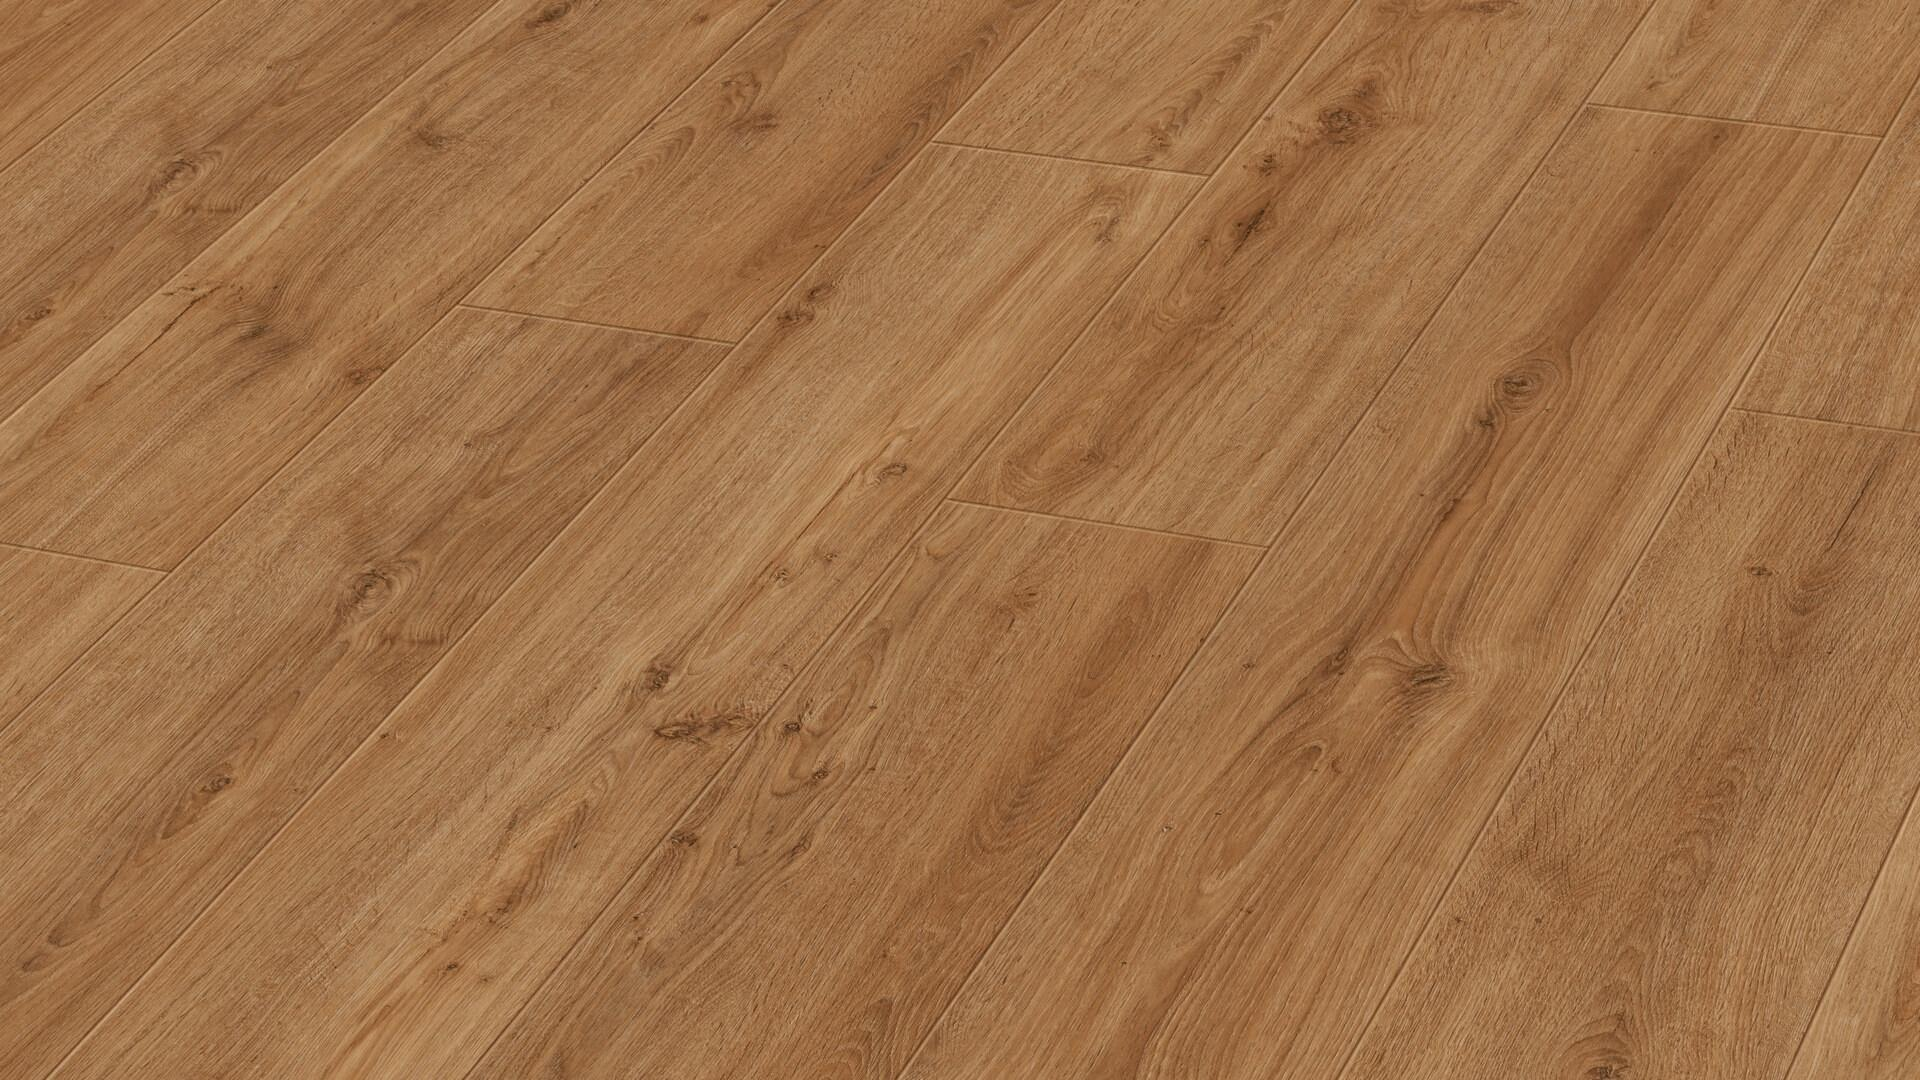 Design flooring MeisterDesign. comfort DD 600 S Golden oak 6999